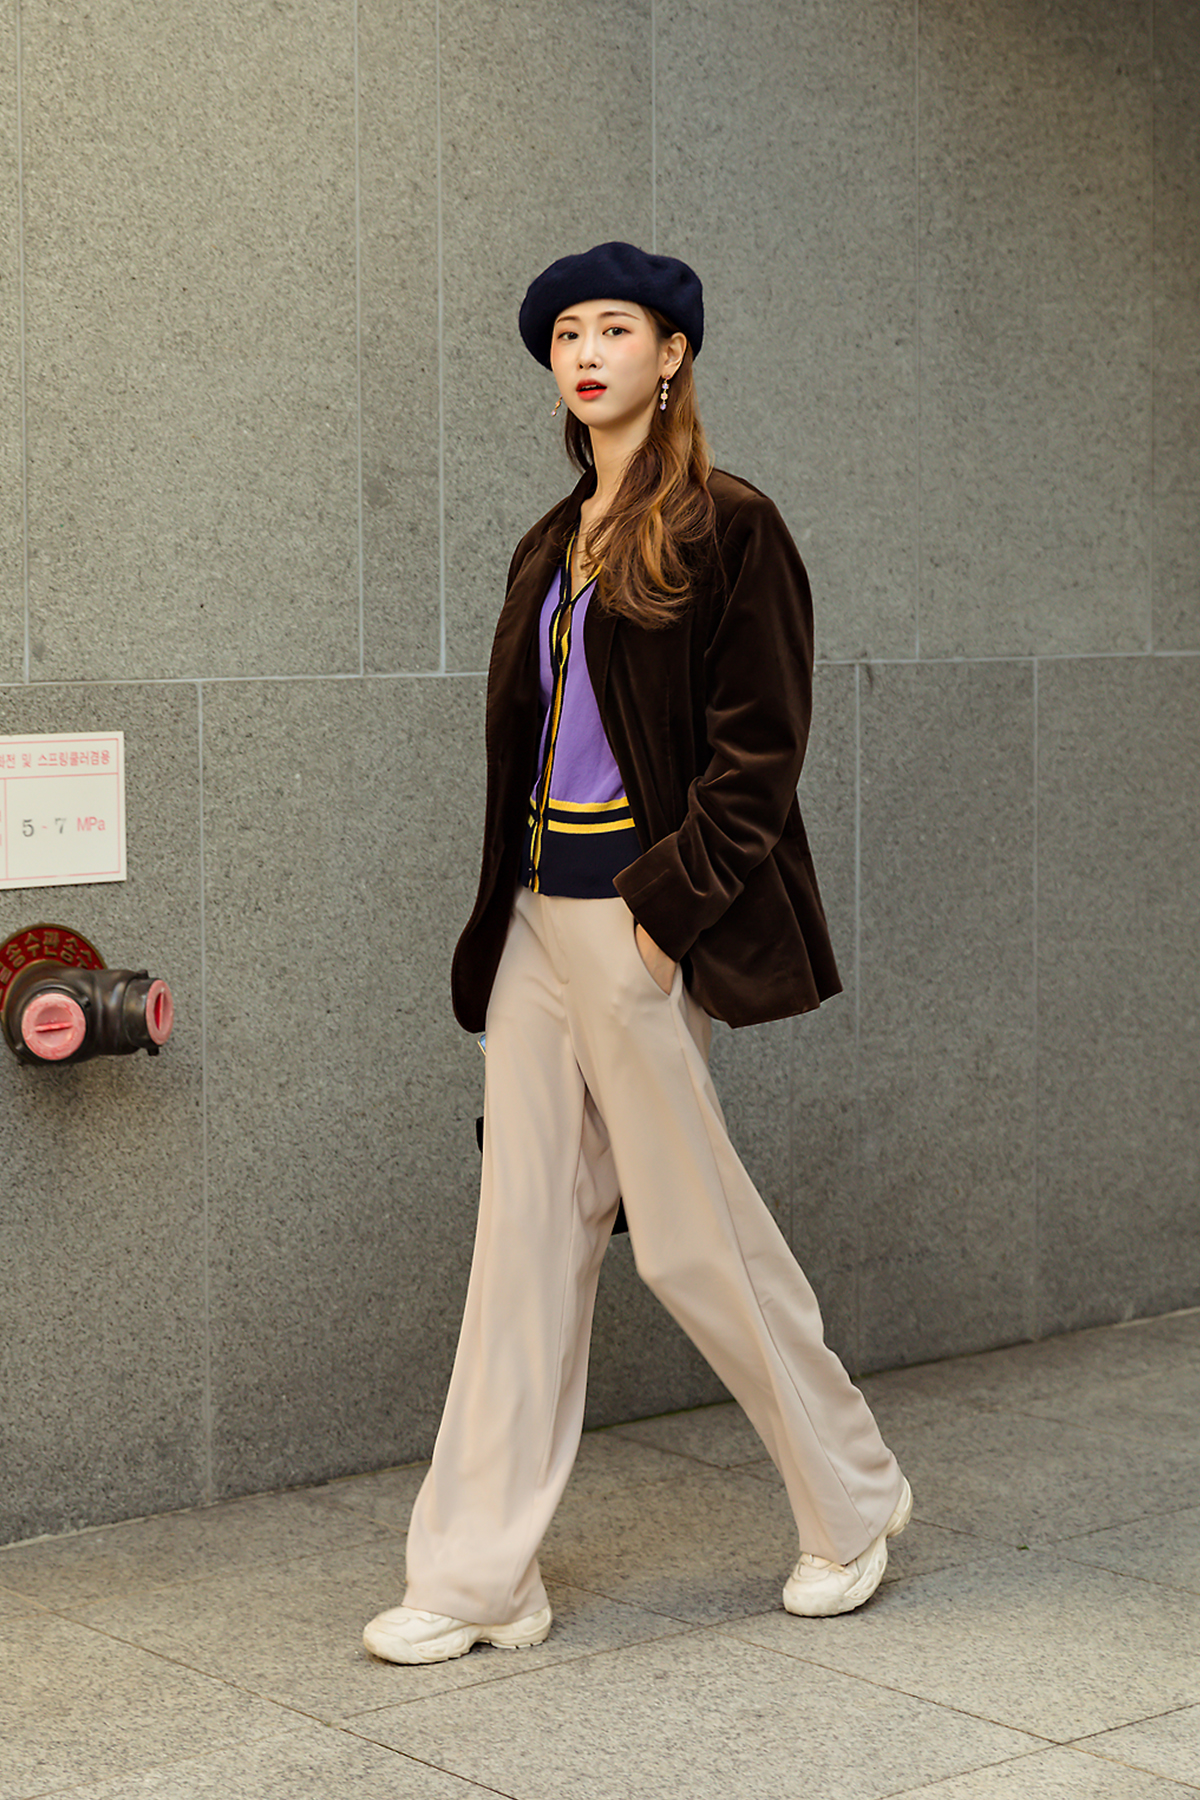 Women winter street style the second week of november 2018 in seoul